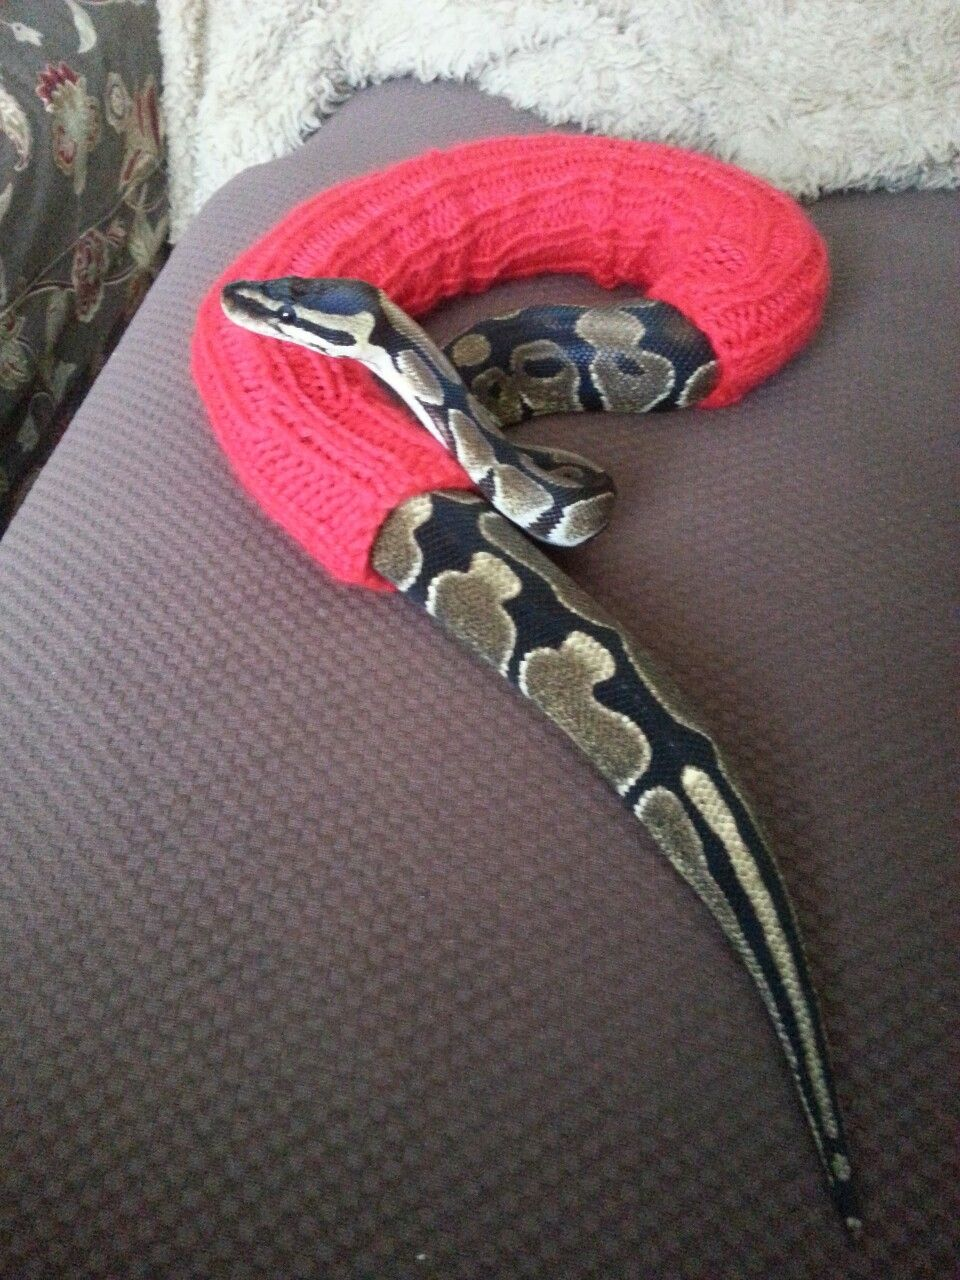 Snake in a sweater animals snake animal pets snakes